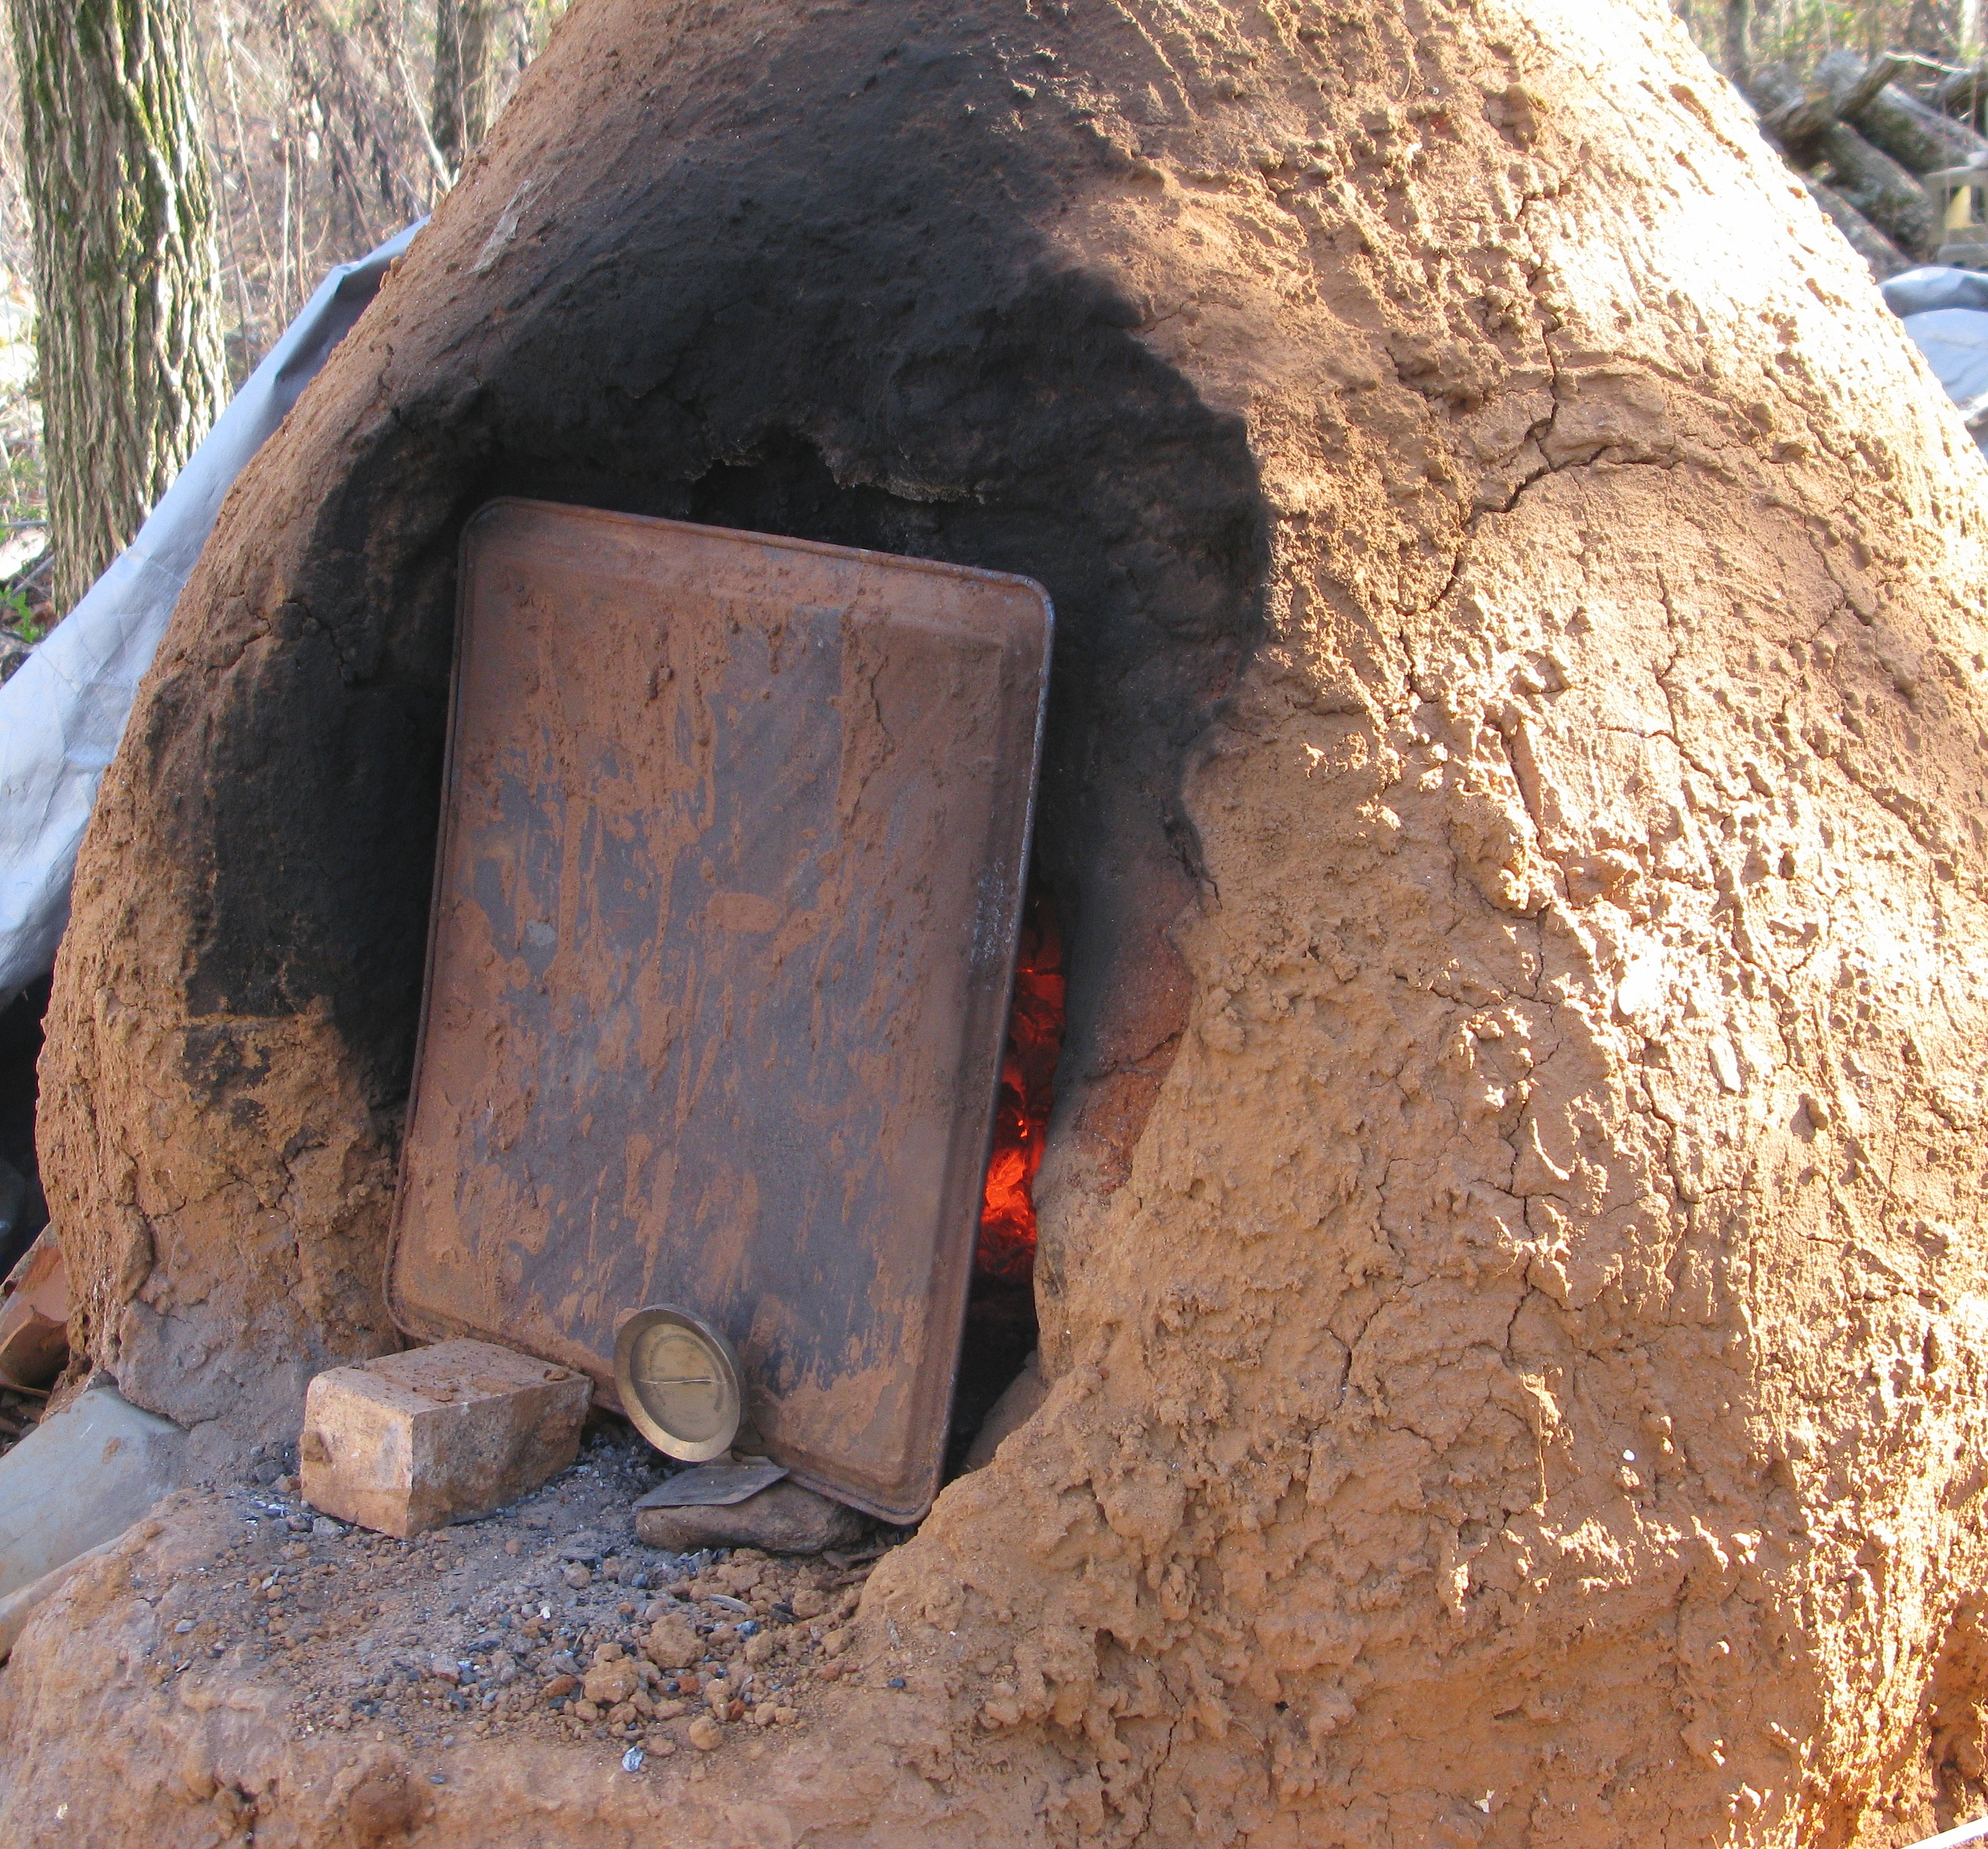 The Poor As Dirt Kitchen Clay Ovens No6ody